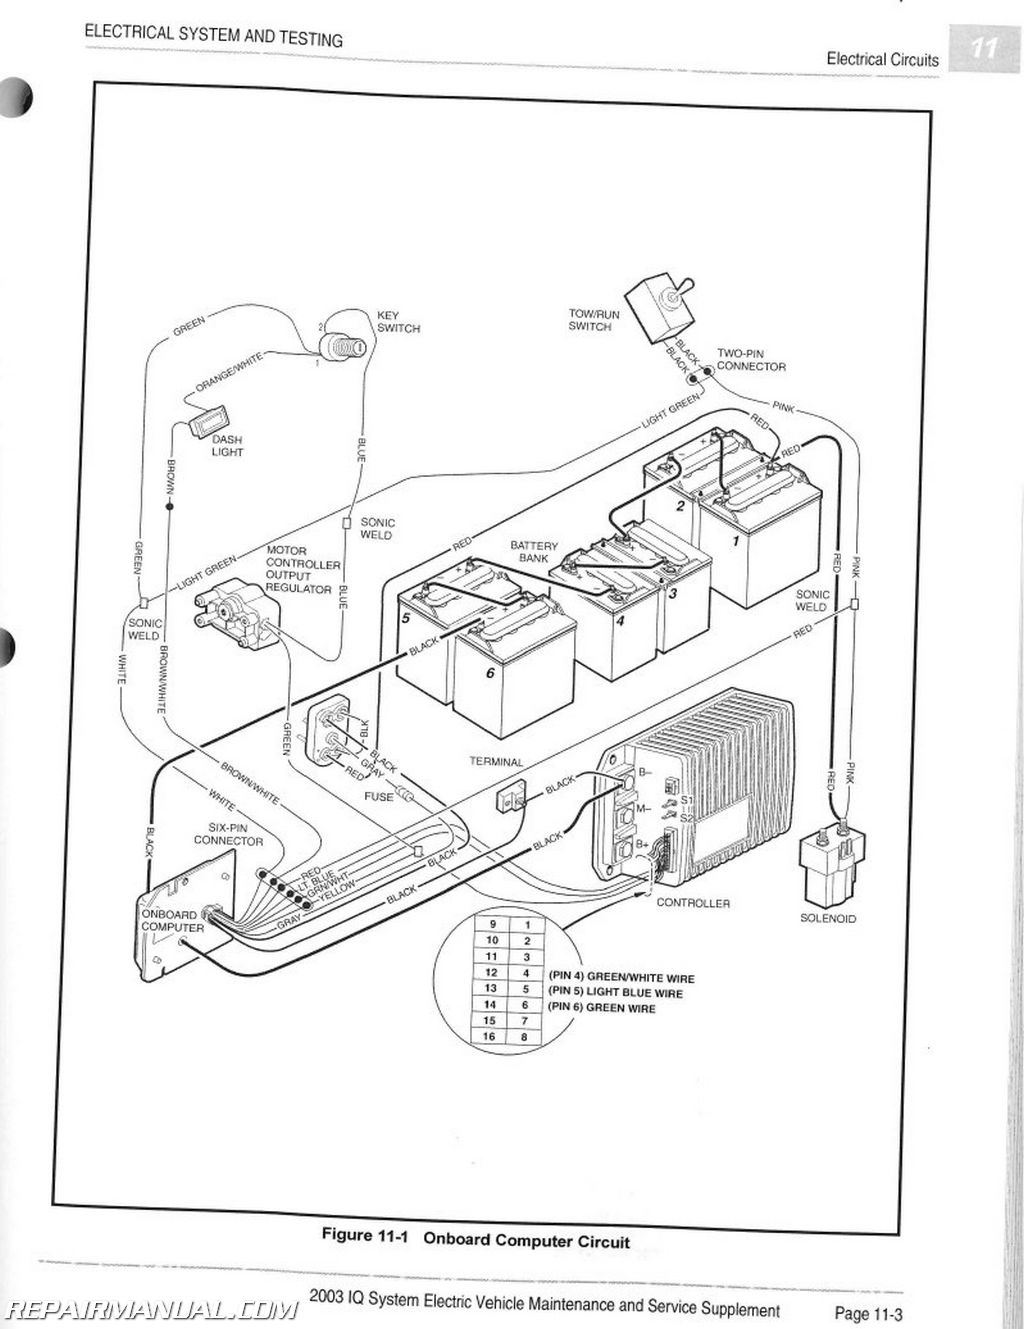 Wire Diagram Club Car Motor 27 Wiring Images Micro Switch Free Picture U2022 2003 Iq System Maintenance And Service Manual Supplement Page 1resize